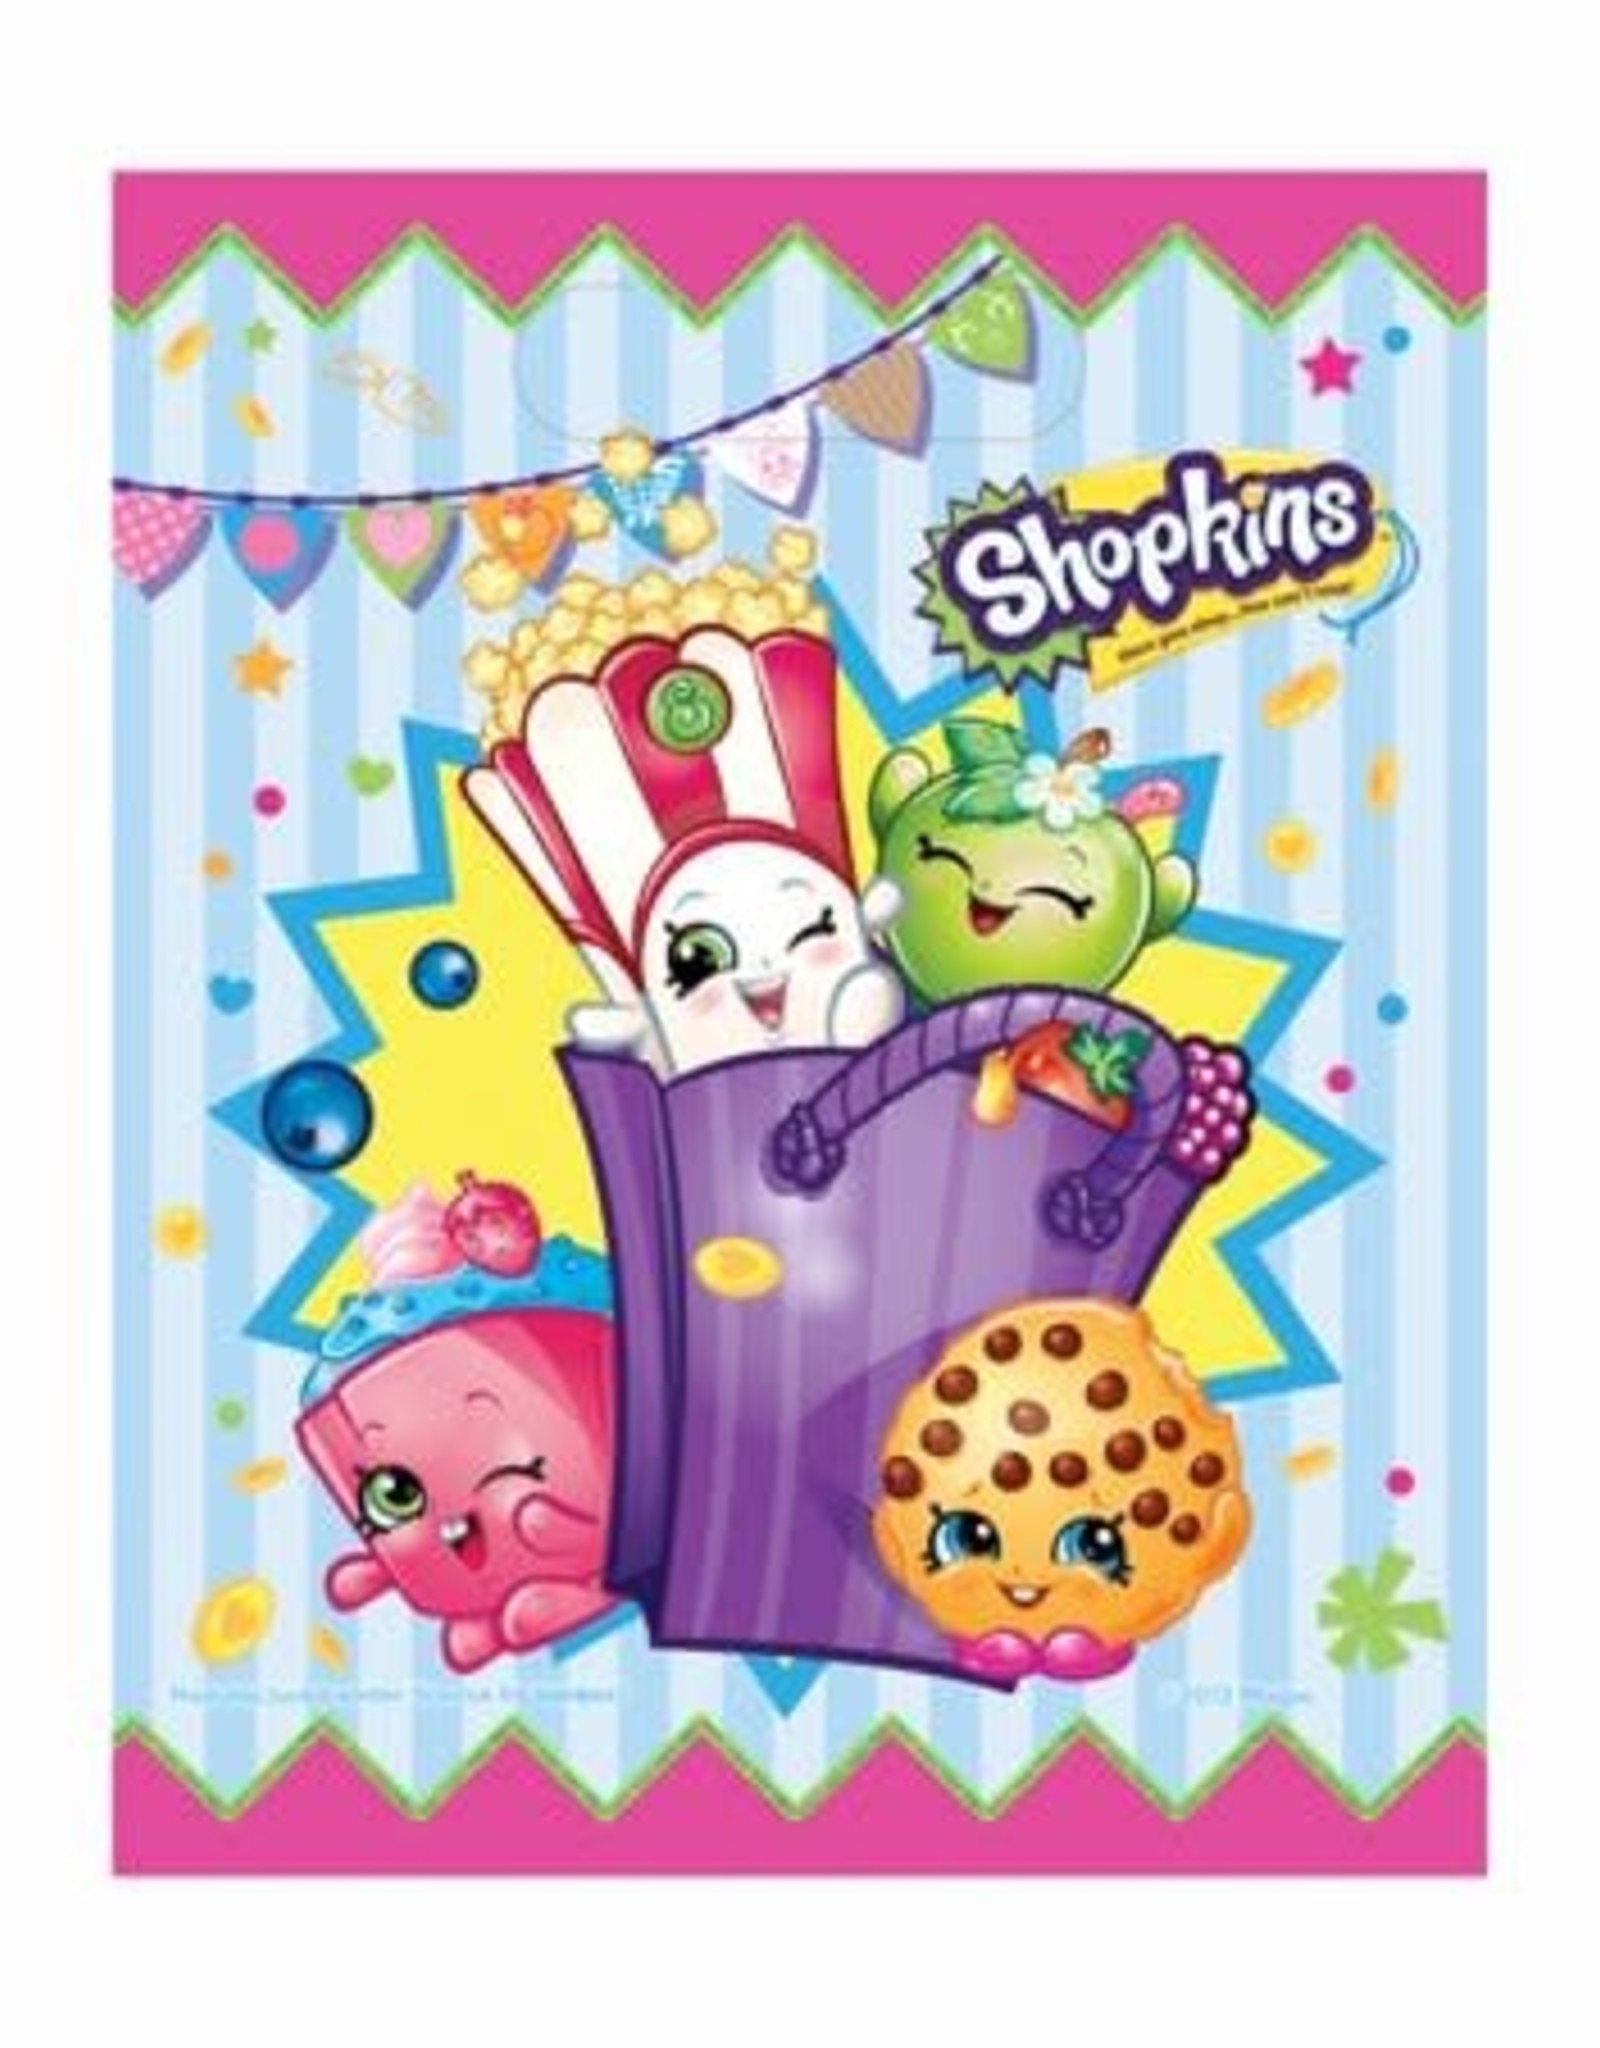 Wallys party factory Shopkins gift bags